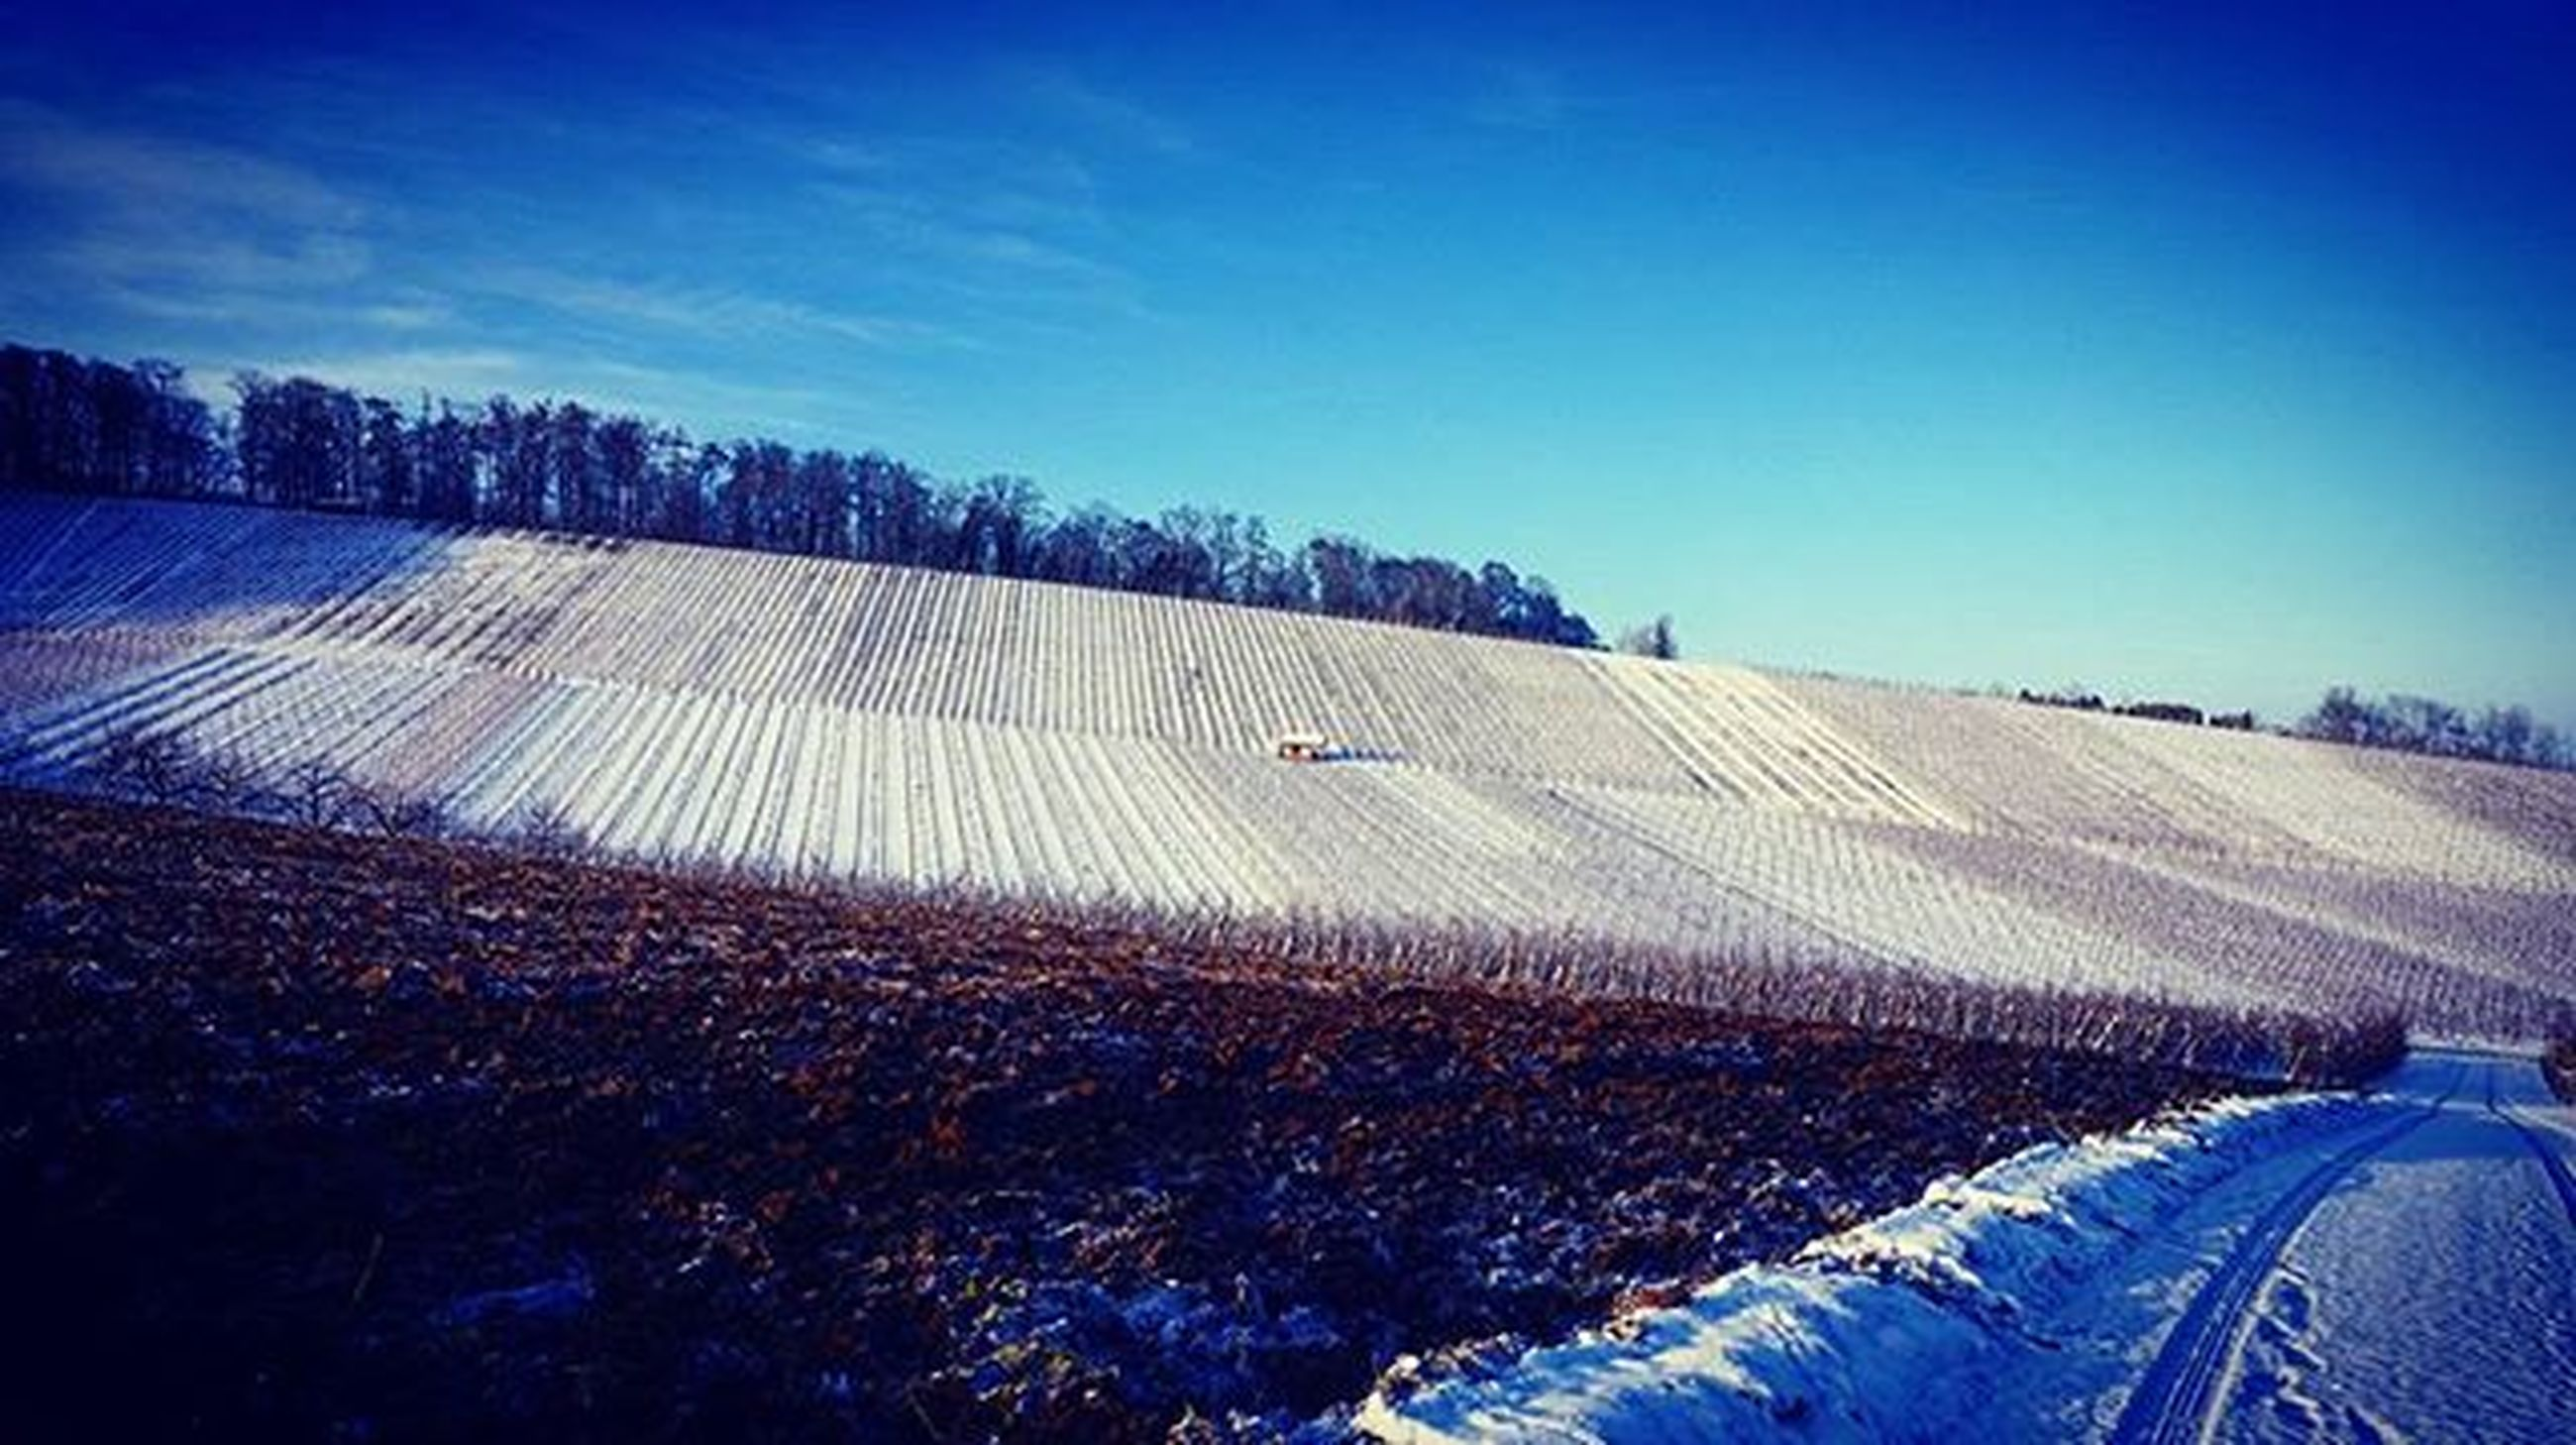 landscape, blue, field, clear sky, copy space, building exterior, sky, architecture, built structure, rural scene, tranquil scene, winter, tranquility, house, nature, scenics, snow, outdoors, agriculture, sunlight